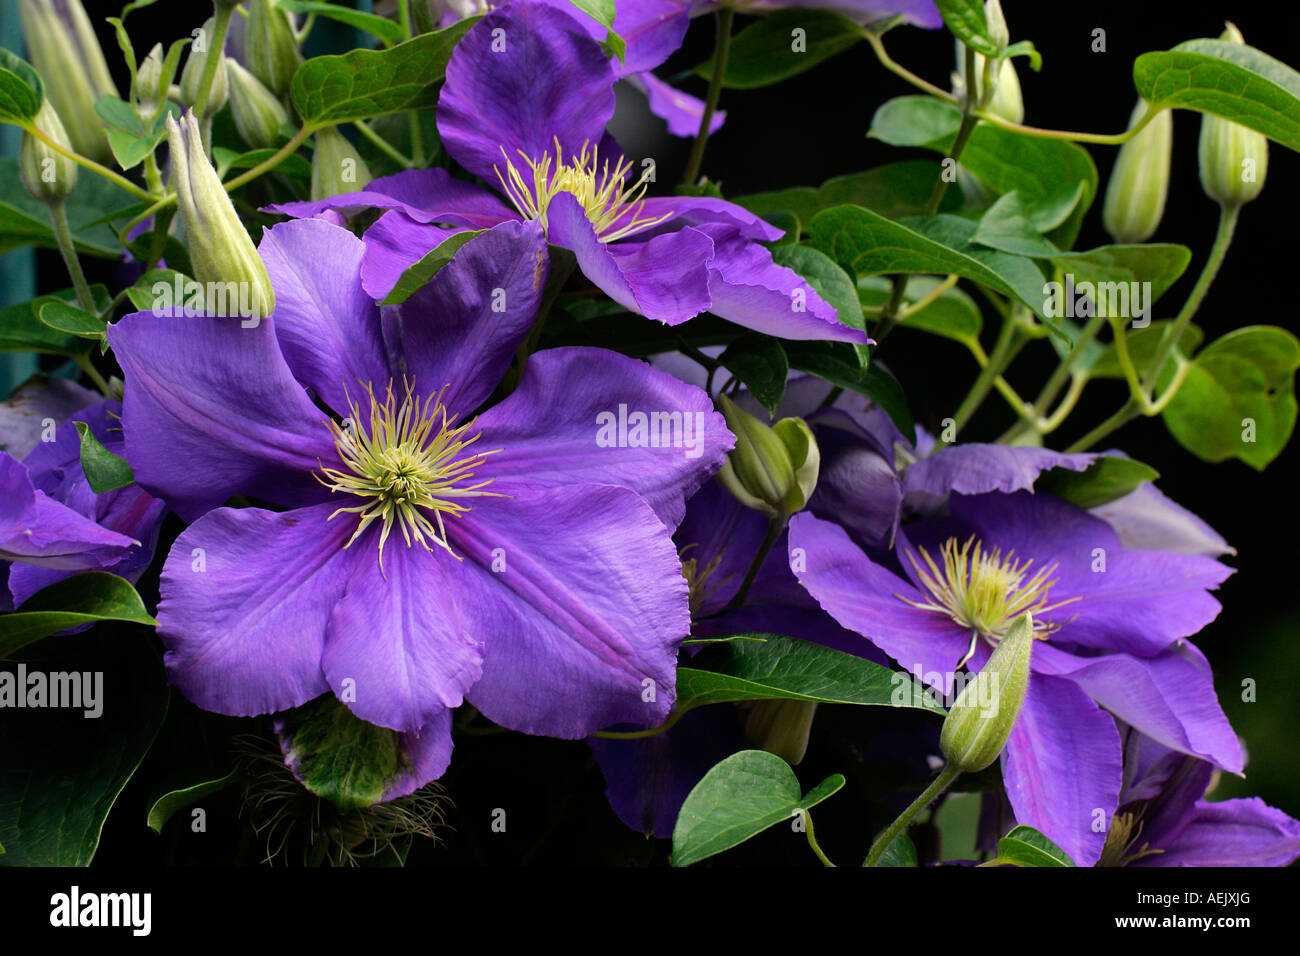 flowering clematis clematis stock photo royalty free. Black Bedroom Furniture Sets. Home Design Ideas